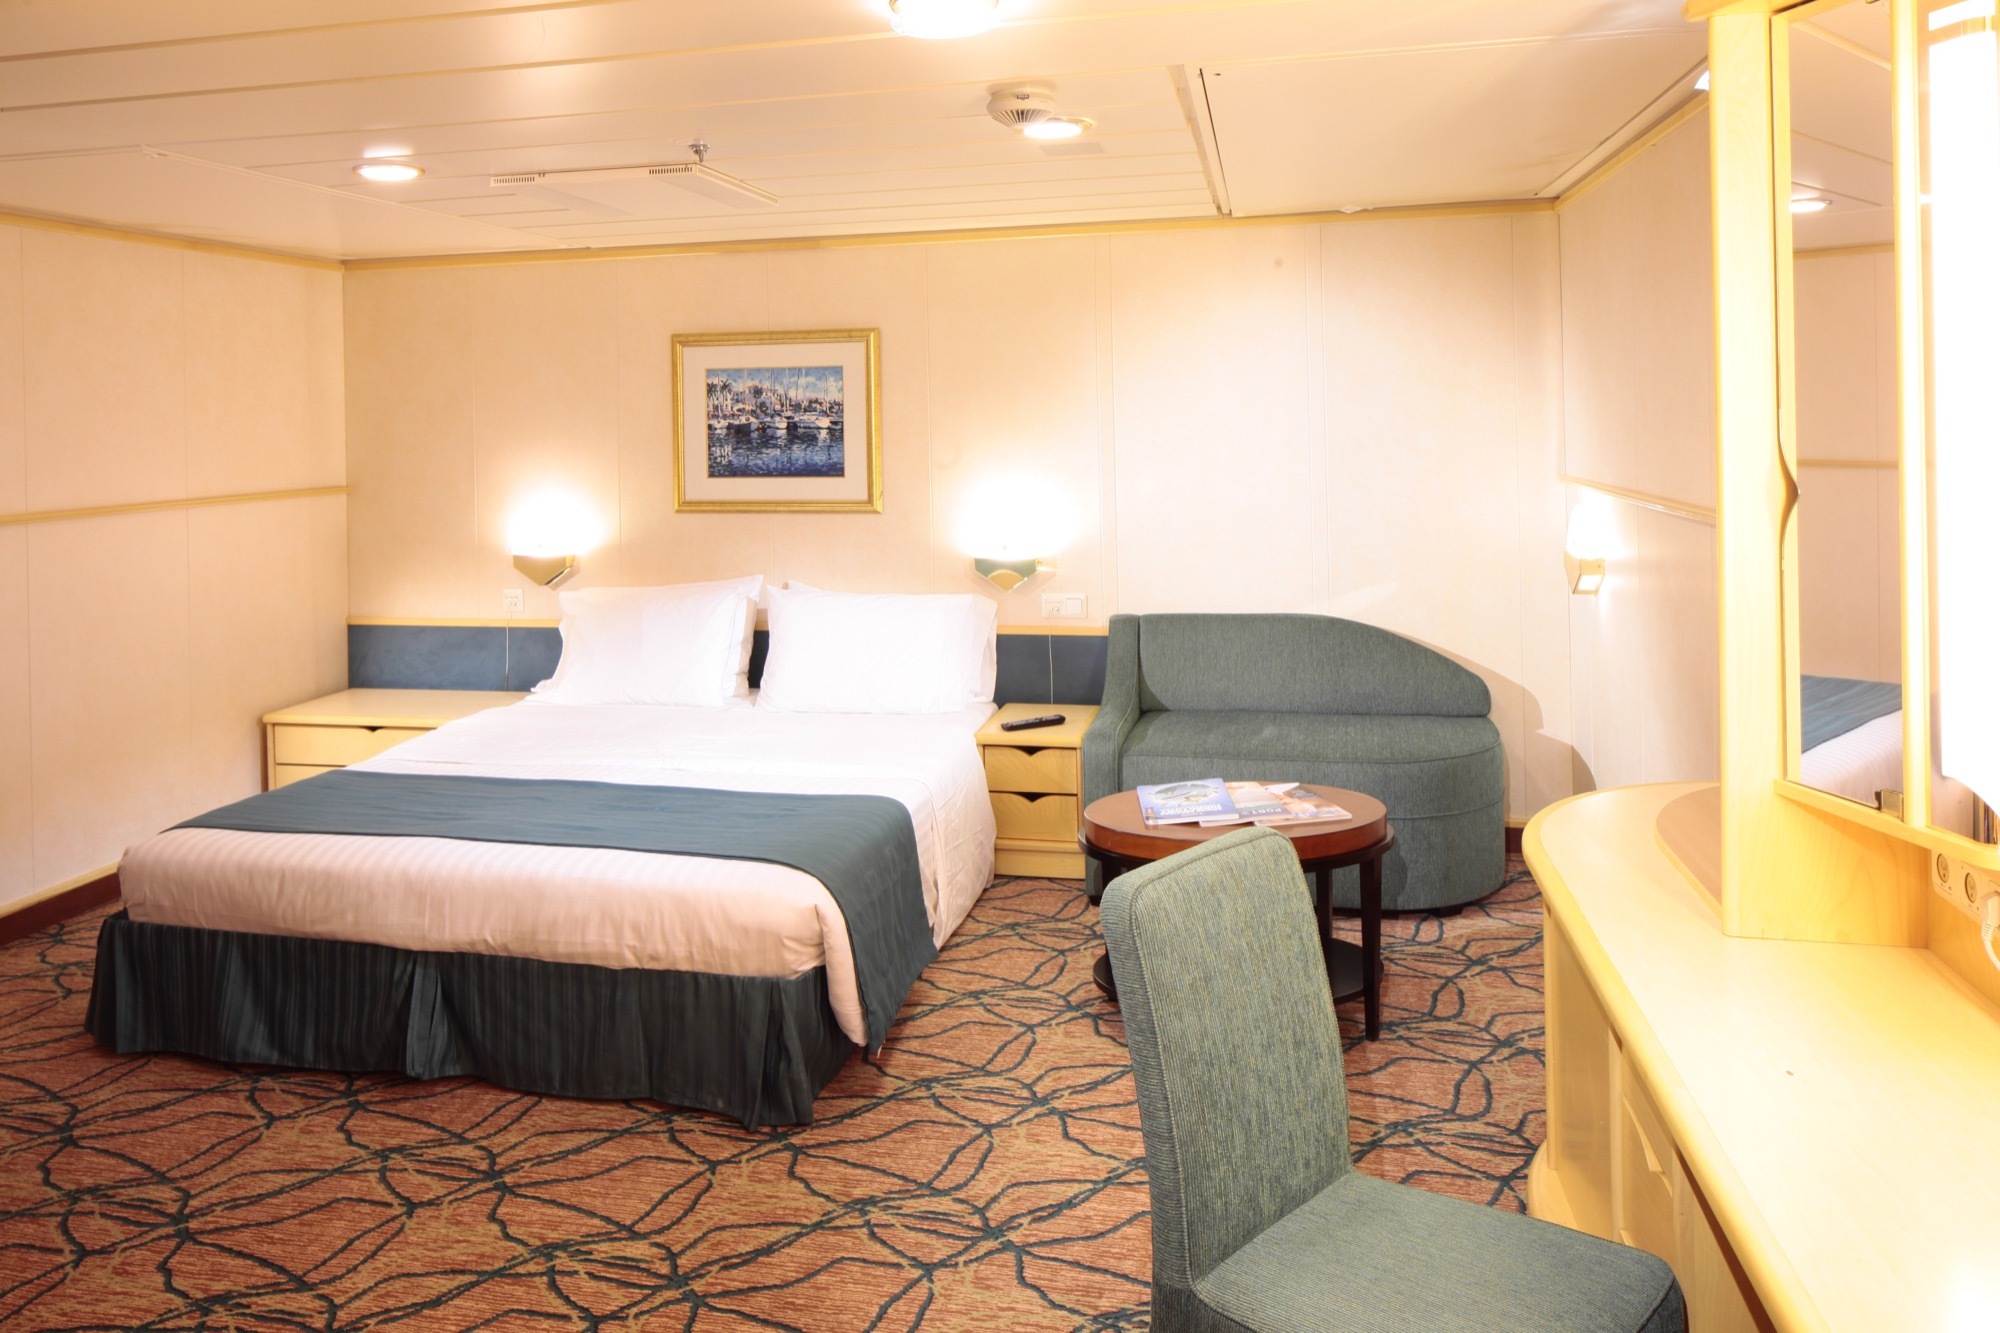 Enchantment Of The Seas Cruise Direction Tailor Made Cruise Holidays